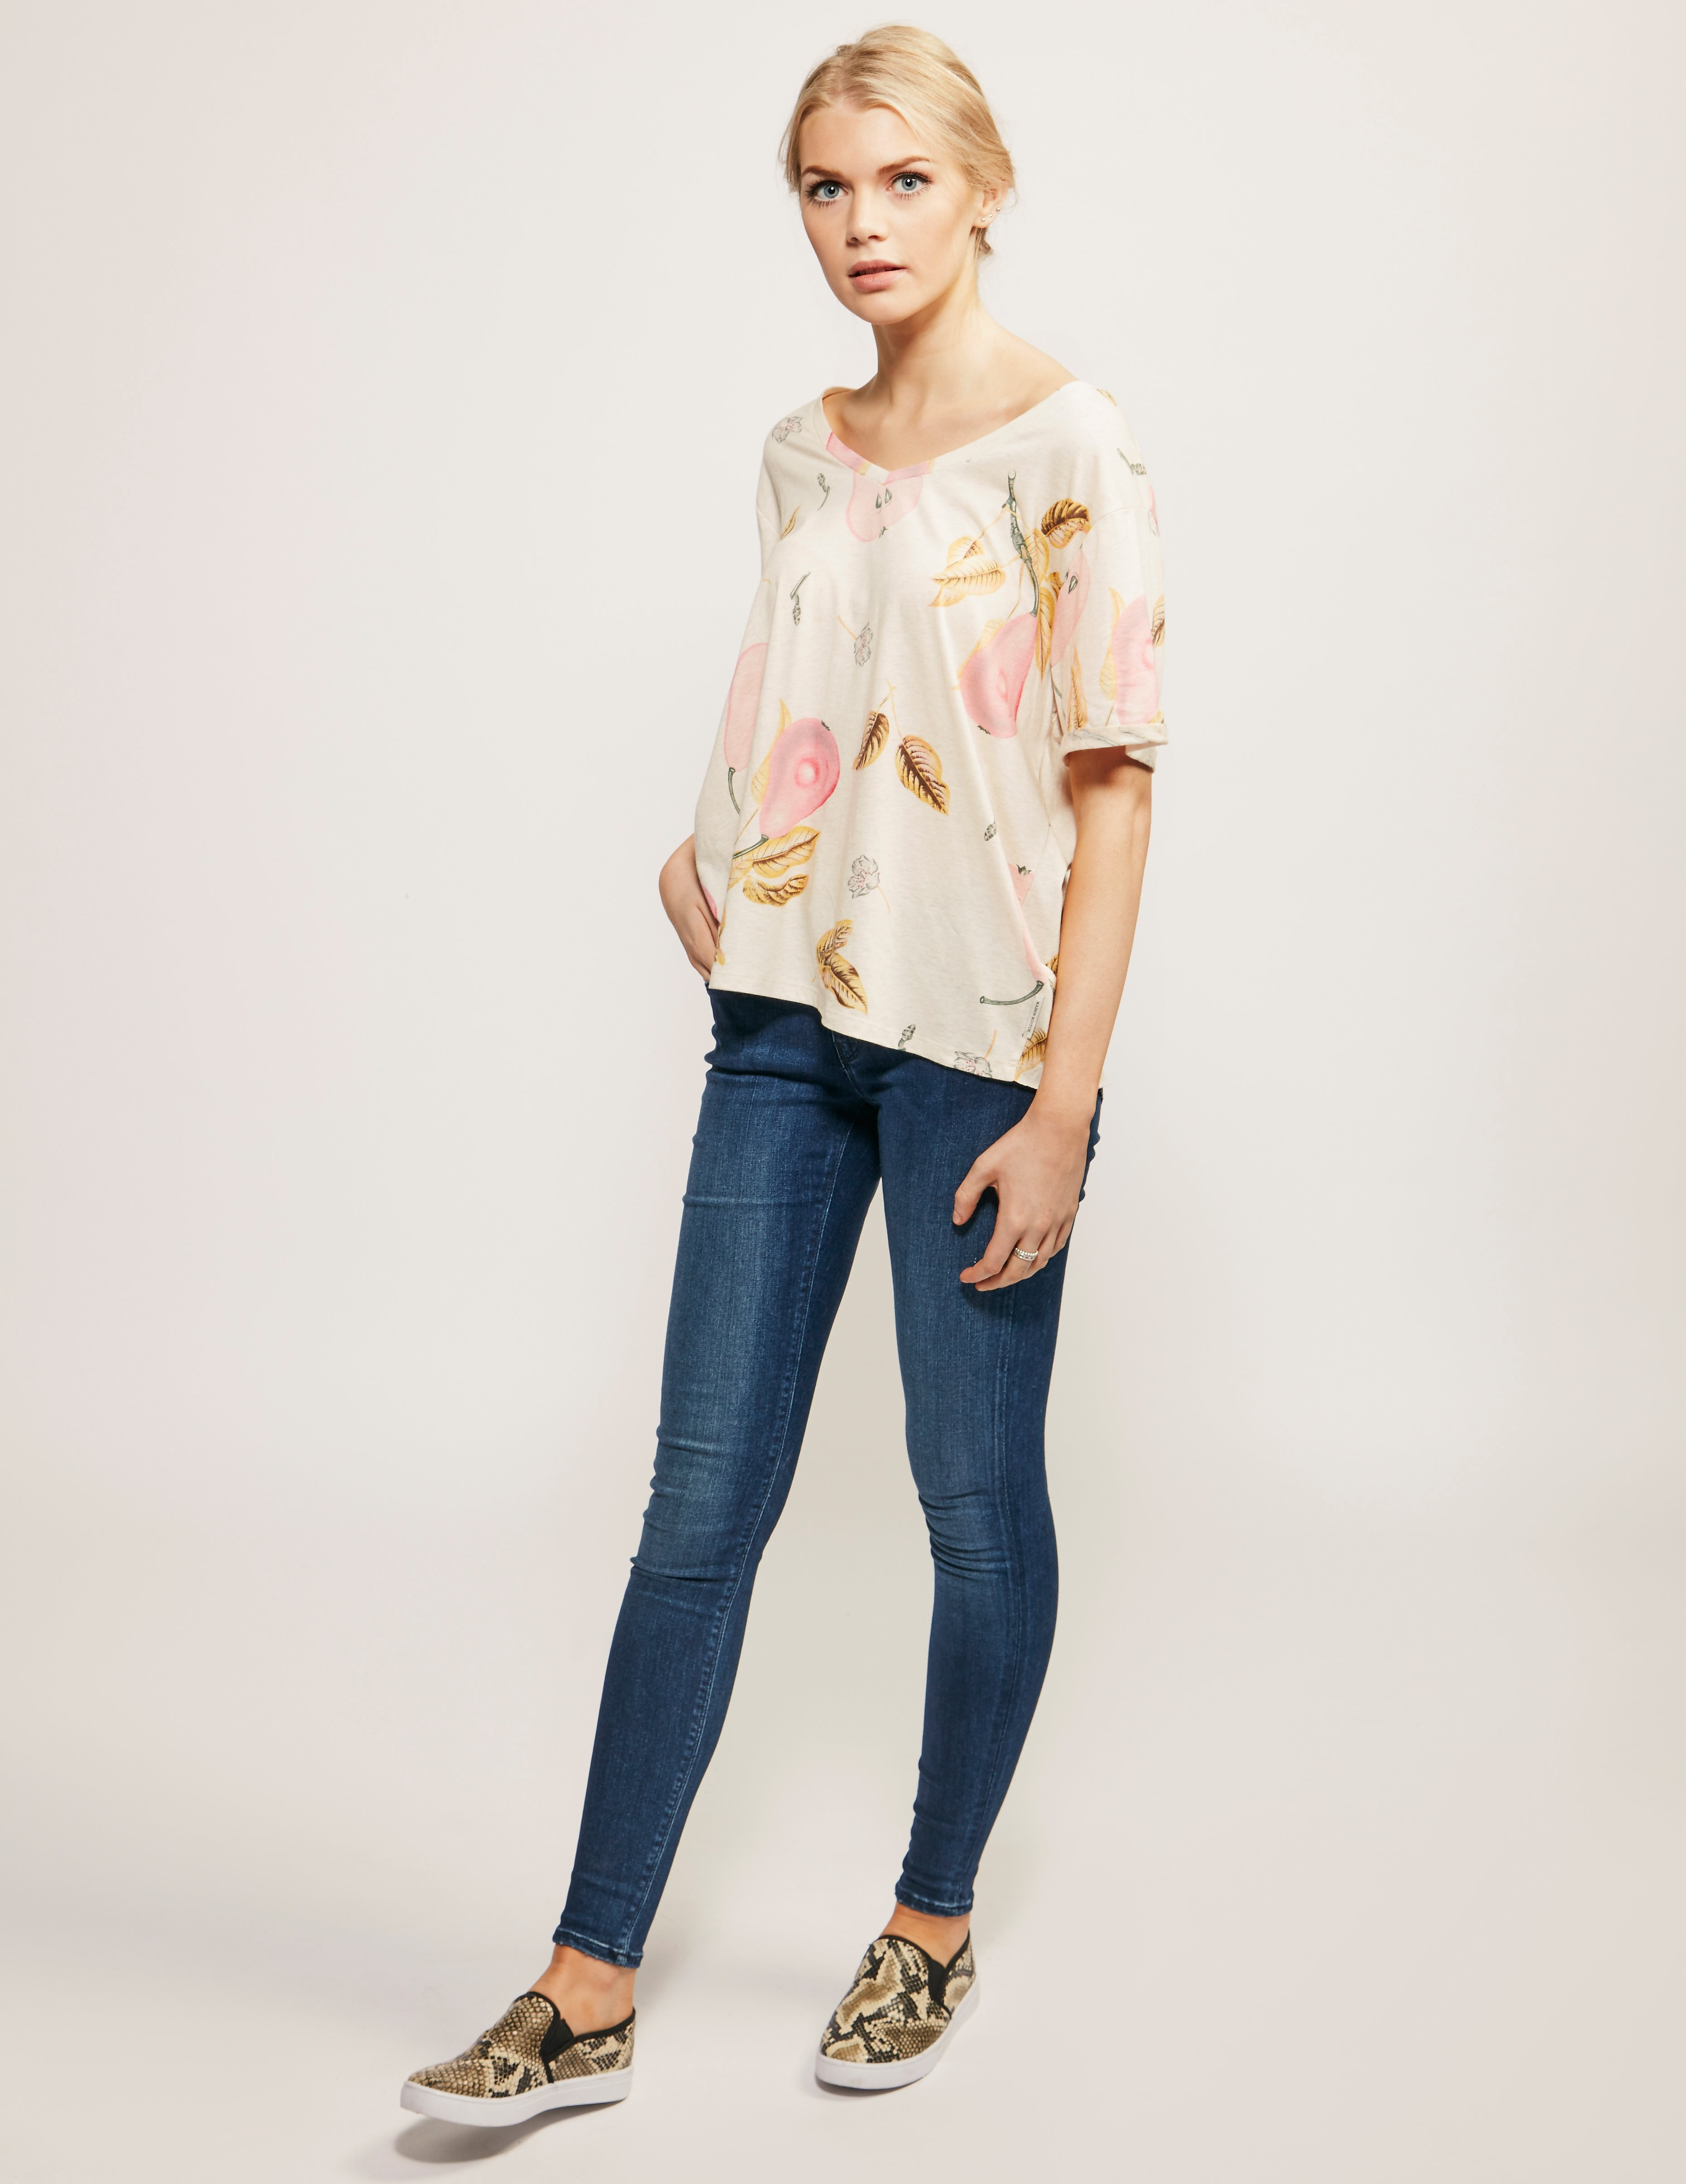 Maison Scotch All Over Print Design T-Shirt